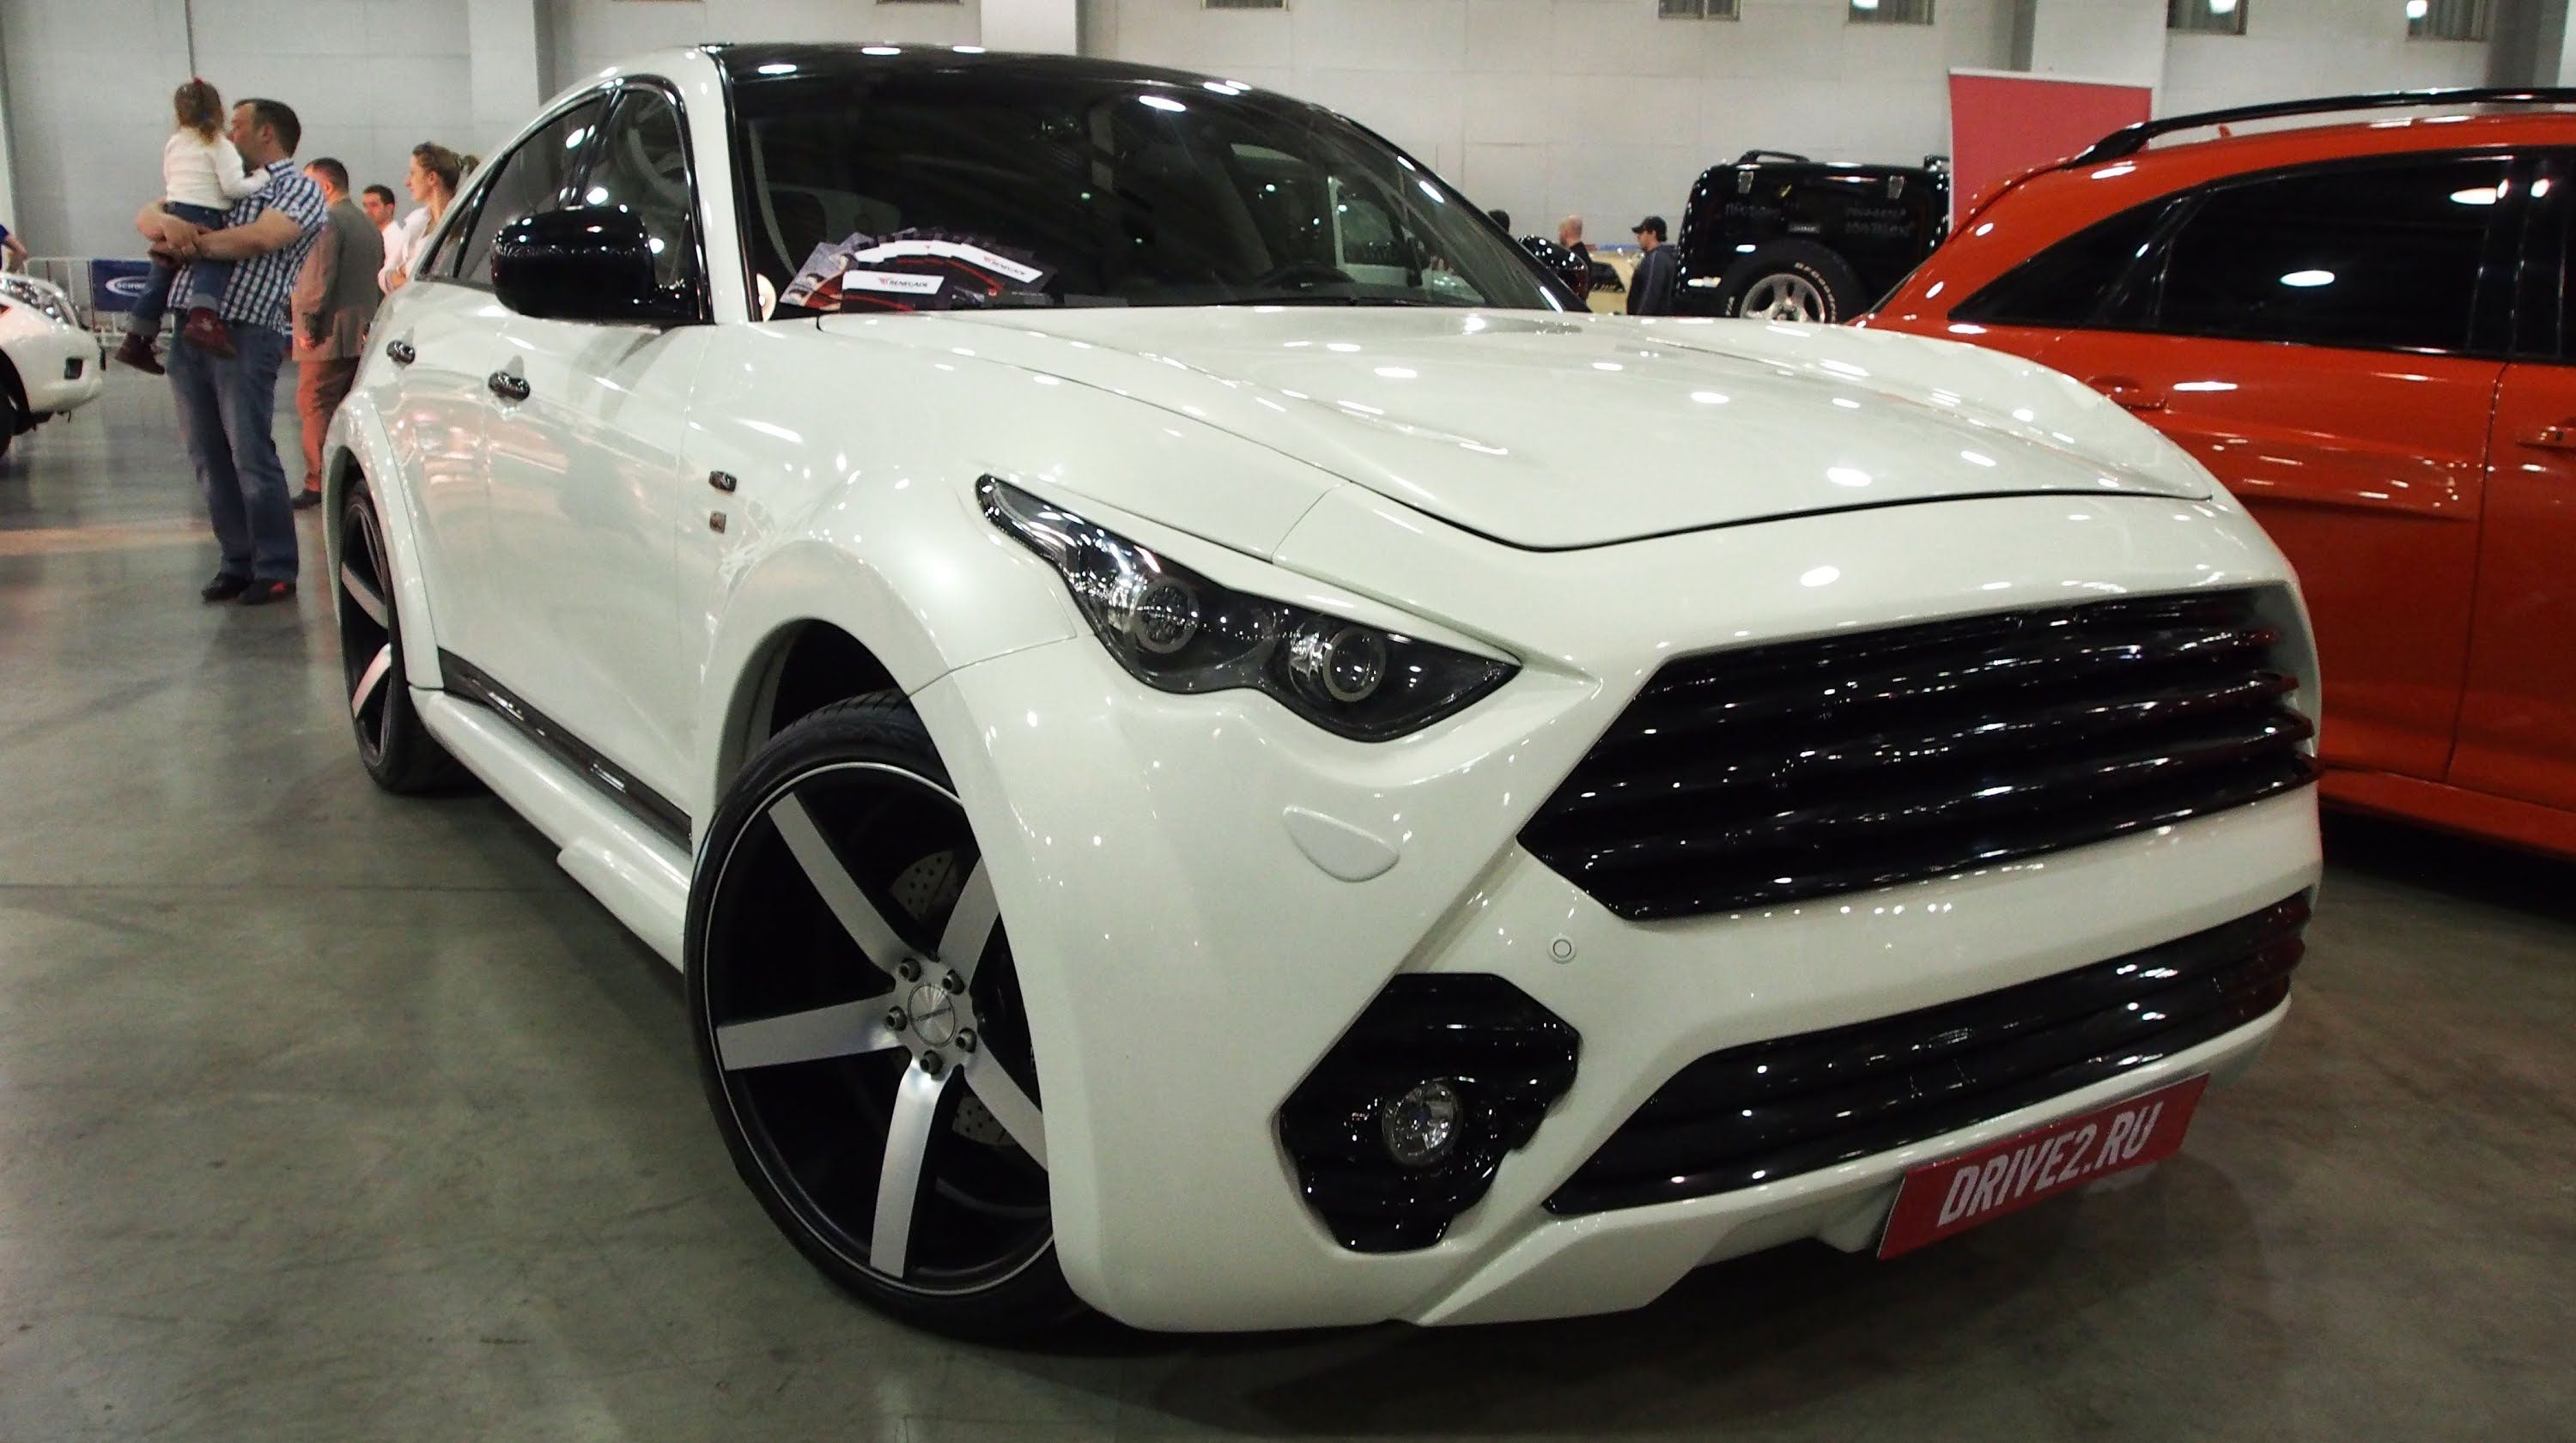 bh buy cardetails sell mycar sale bahrain recent infiniti infinity in car for